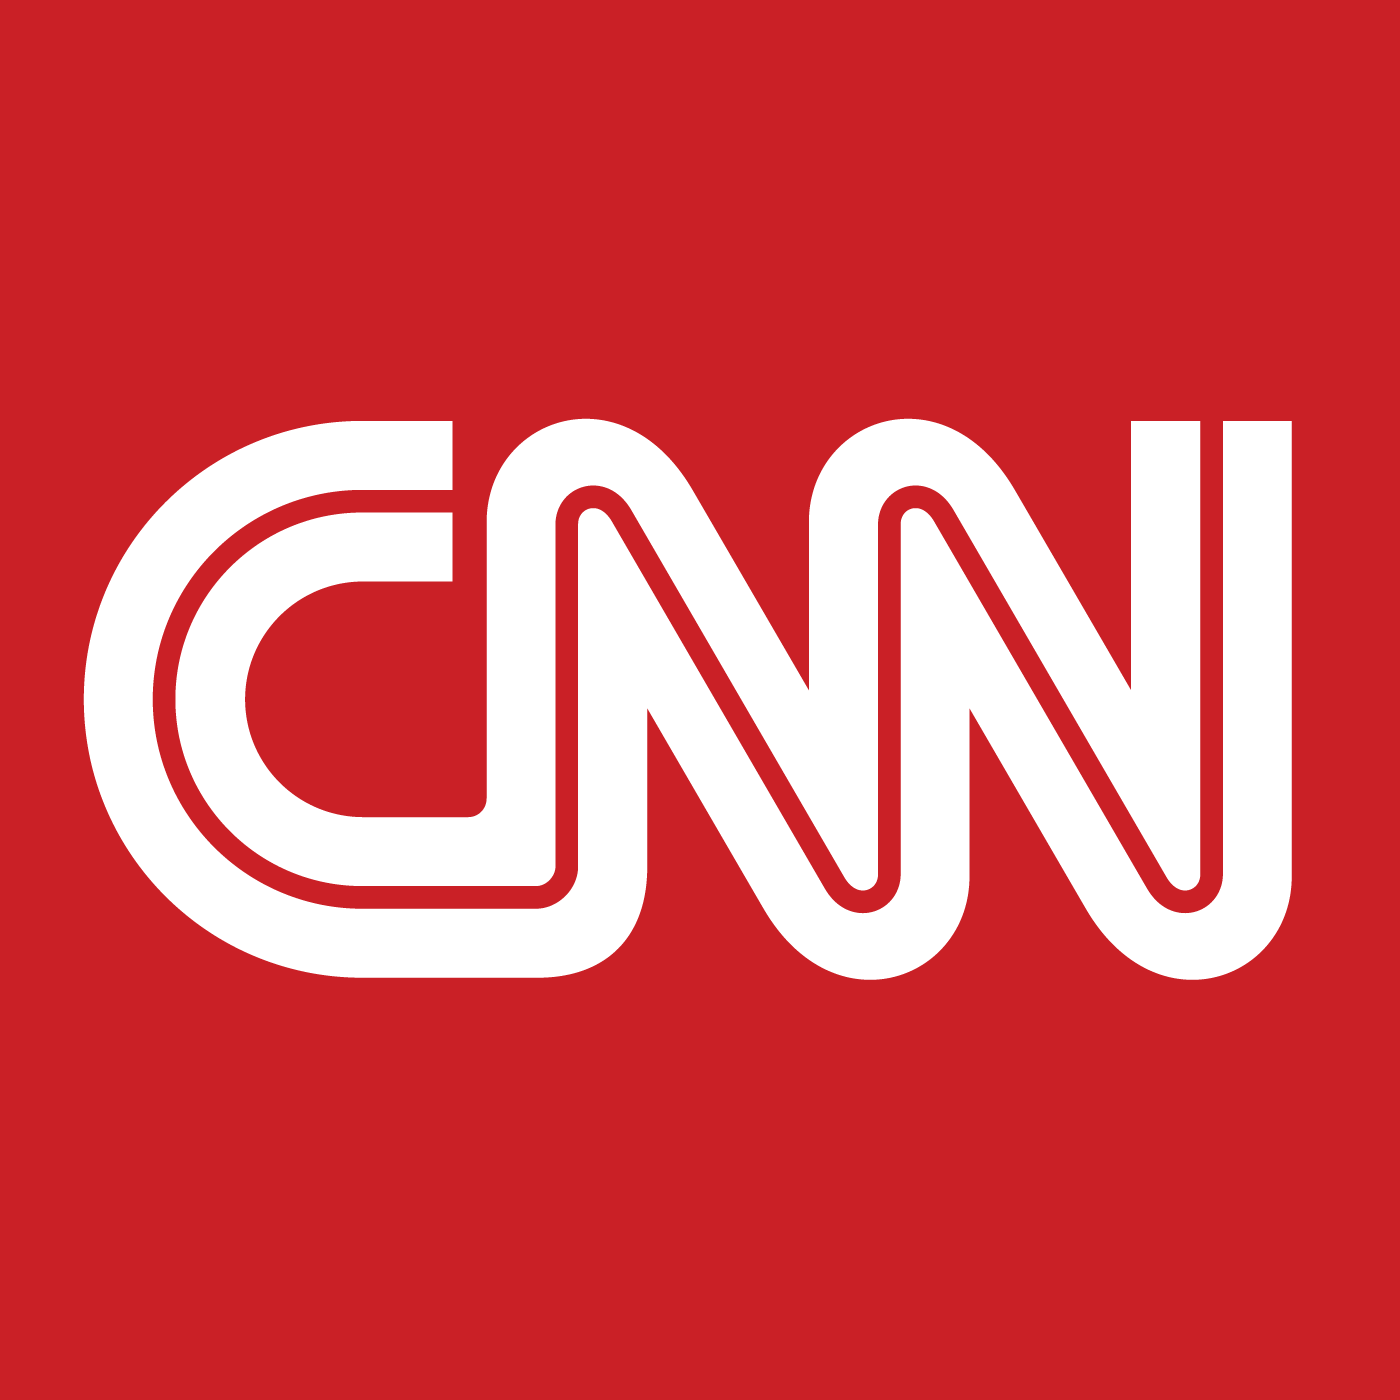 CNN Primary Logo.png